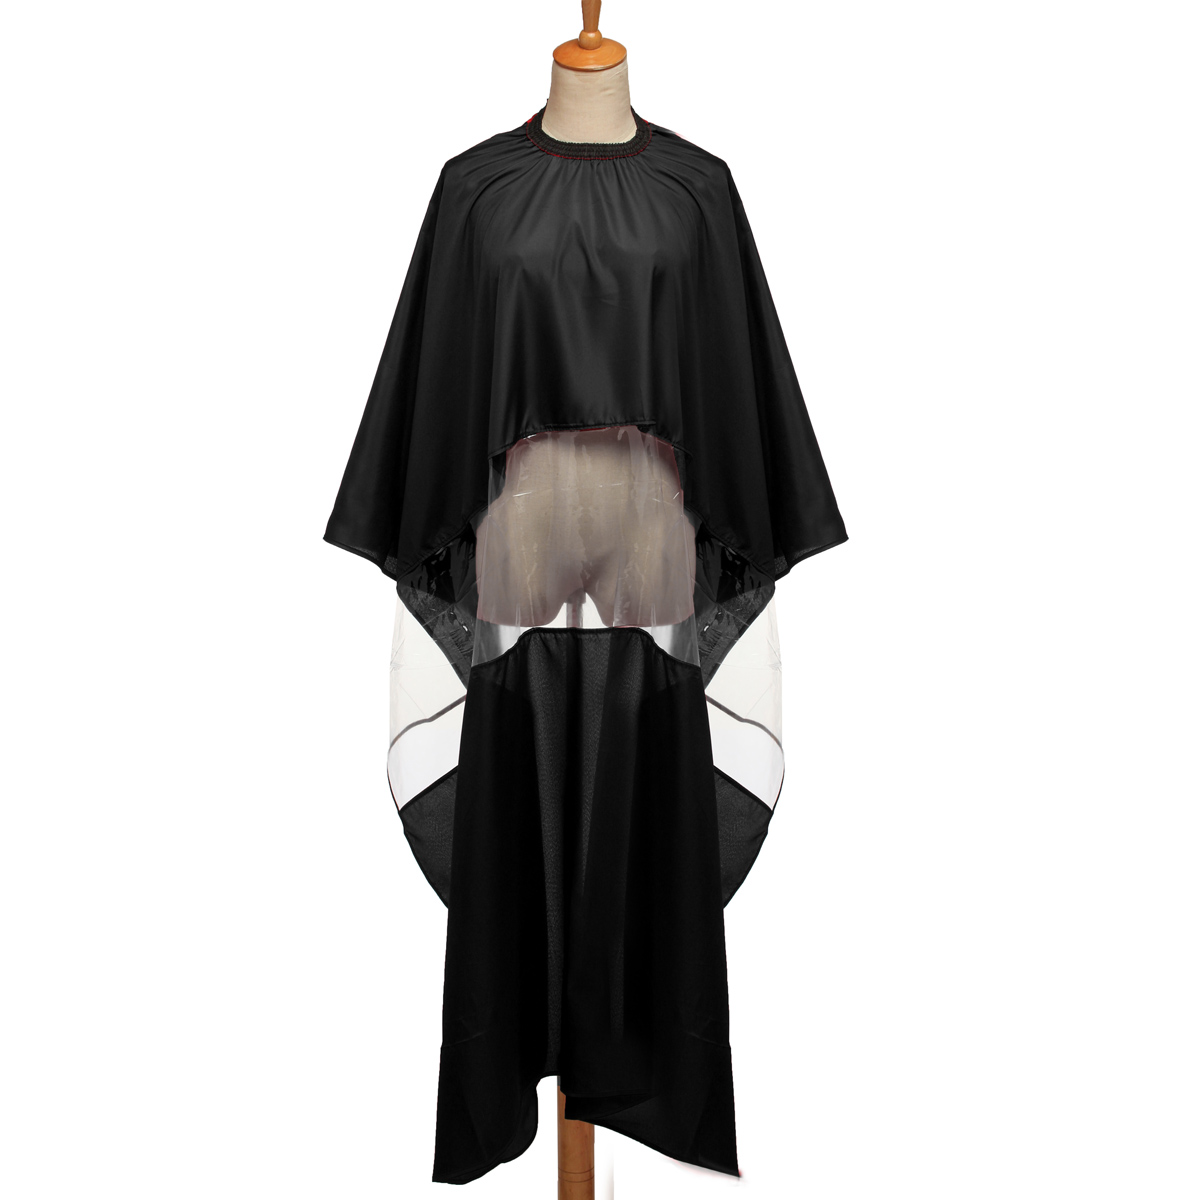 Barber Gown : Details about Waterproof Barber Gown Cape Hairdressing Hairdresser ...